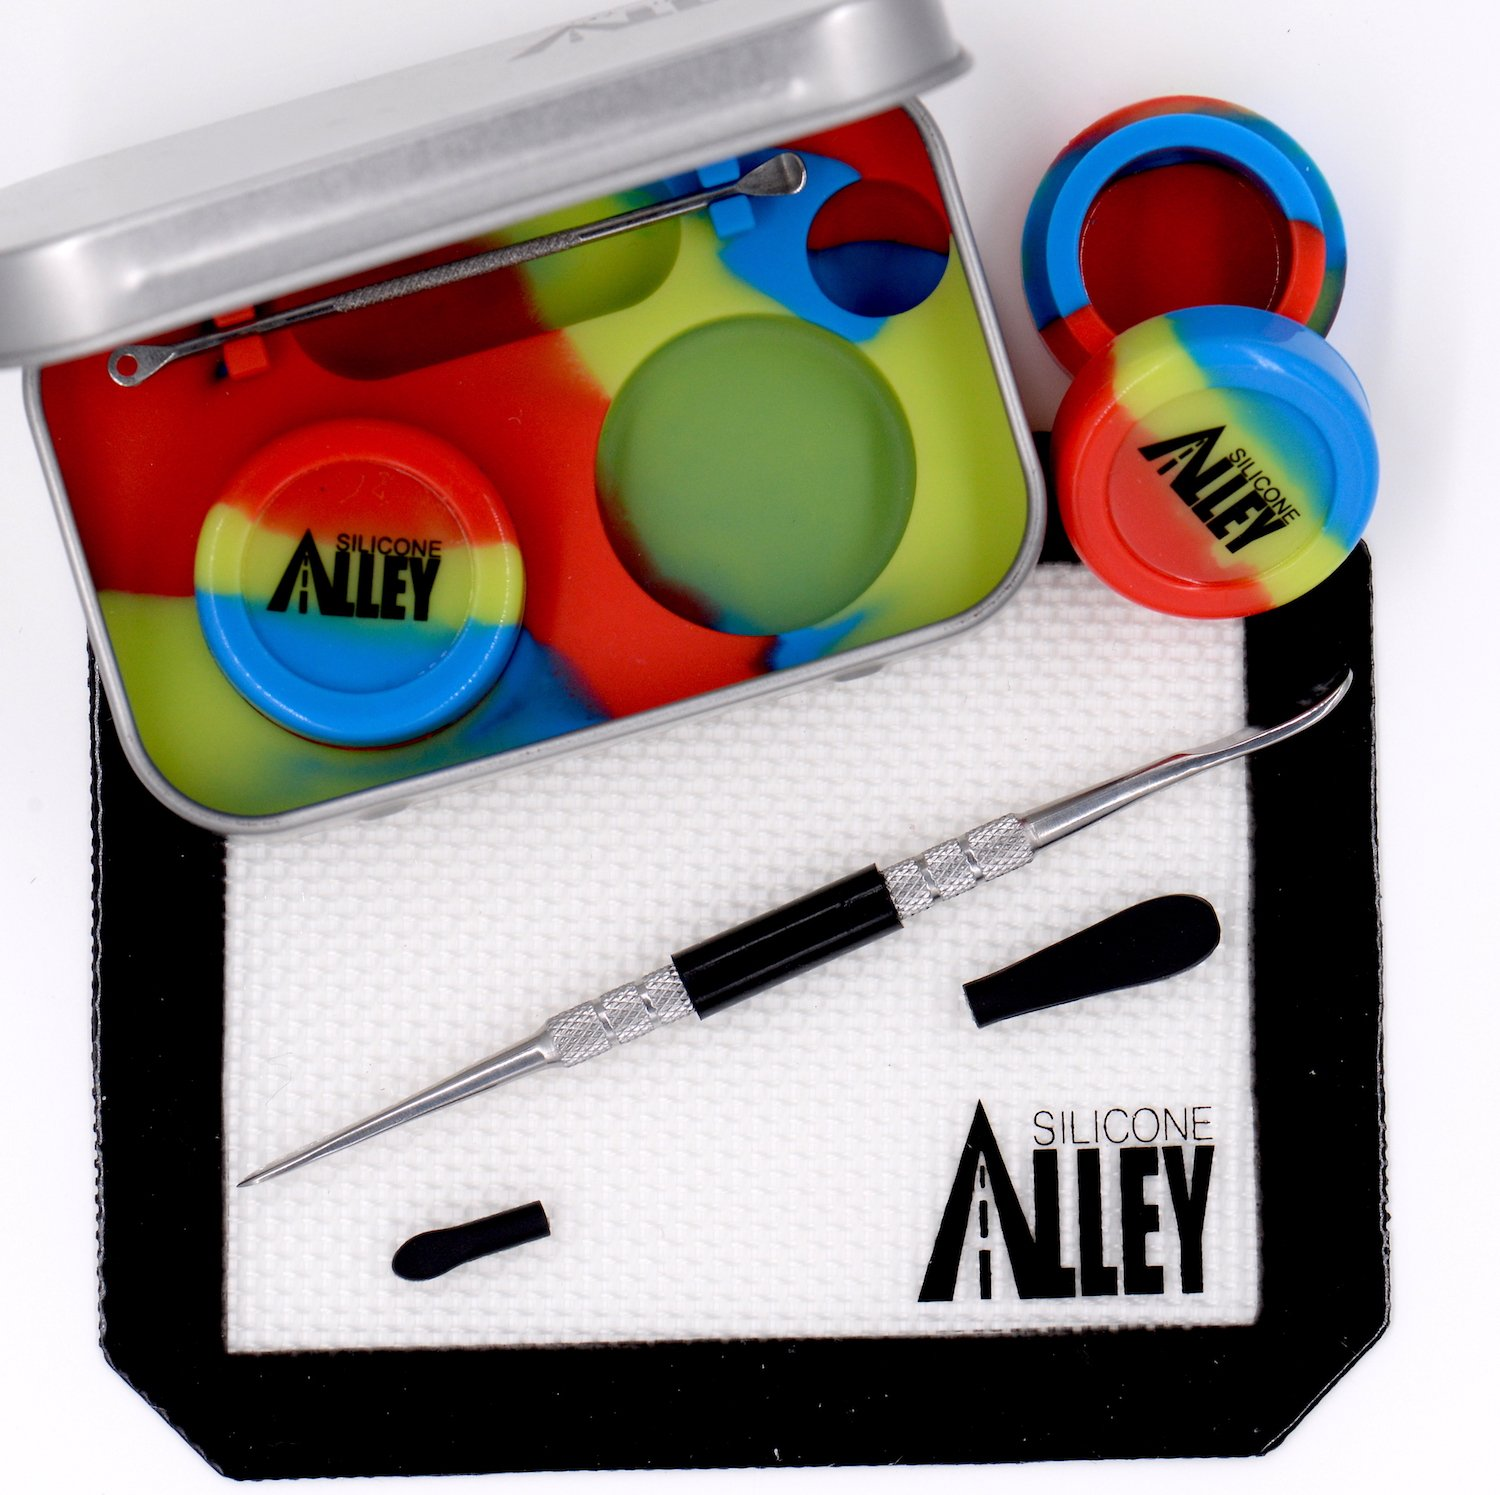 SILICONE ALLEY Wax Carving Travel Kit - [Red/Blue/Green] Nonstick Tin with Silicone Jar Containers 5ml (2 units) + Stainless Steel Carving Tool (1) + Mini Carver Tool (1) + Wax Mat 3'' x 5'' (1)